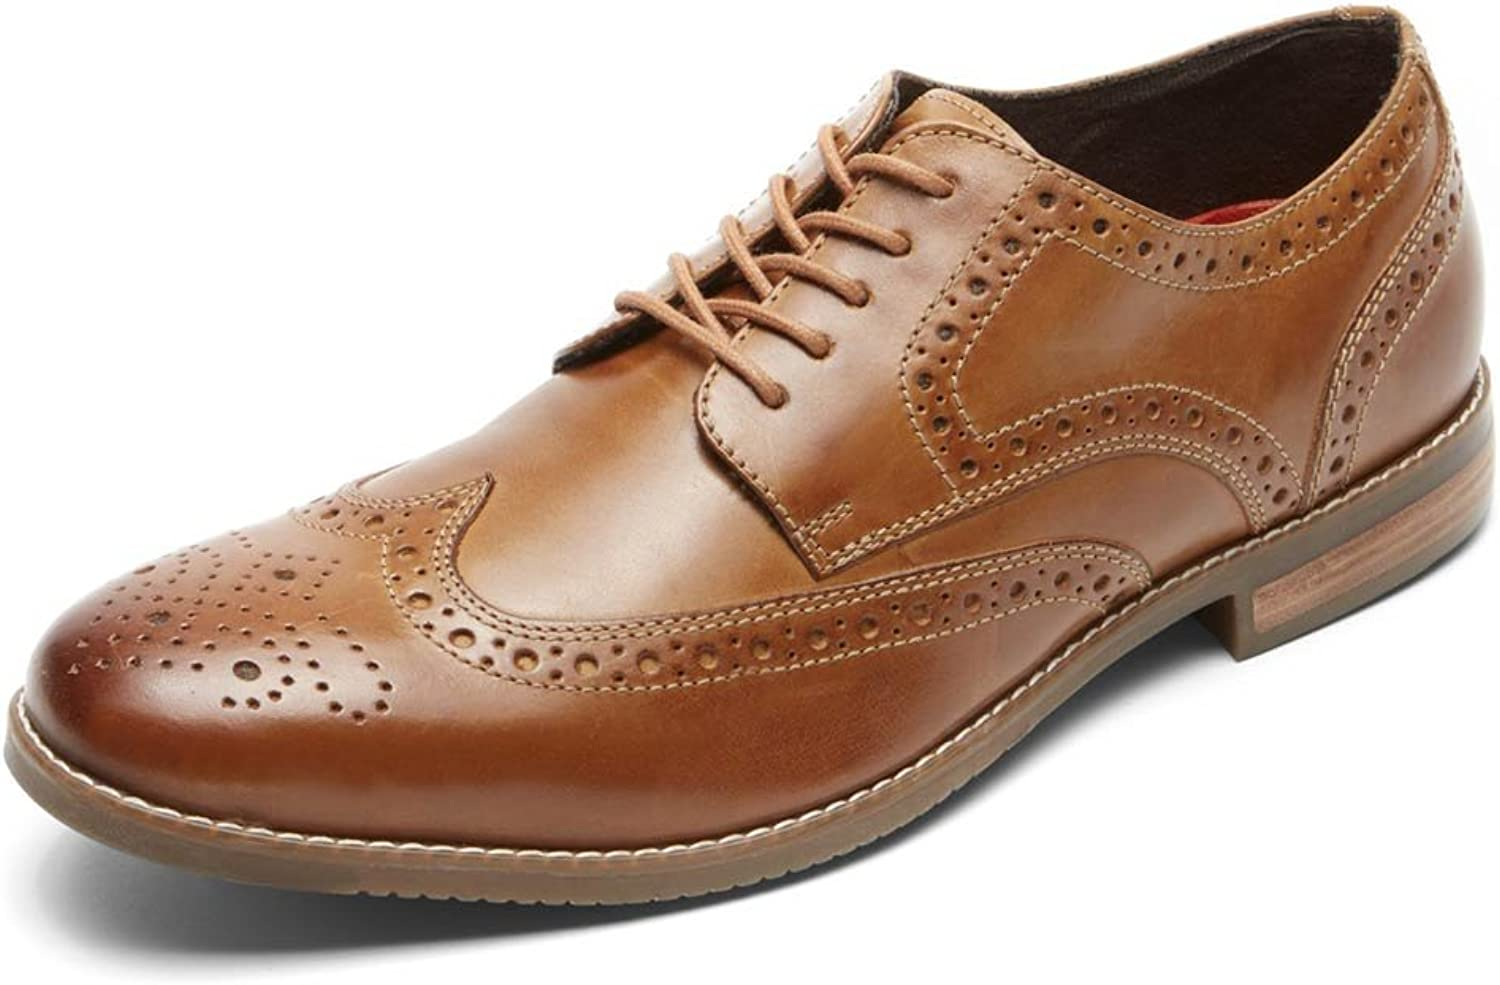 Rockport Men's Symon Wingtip shoes, 8.5 D(M) US, Cognac